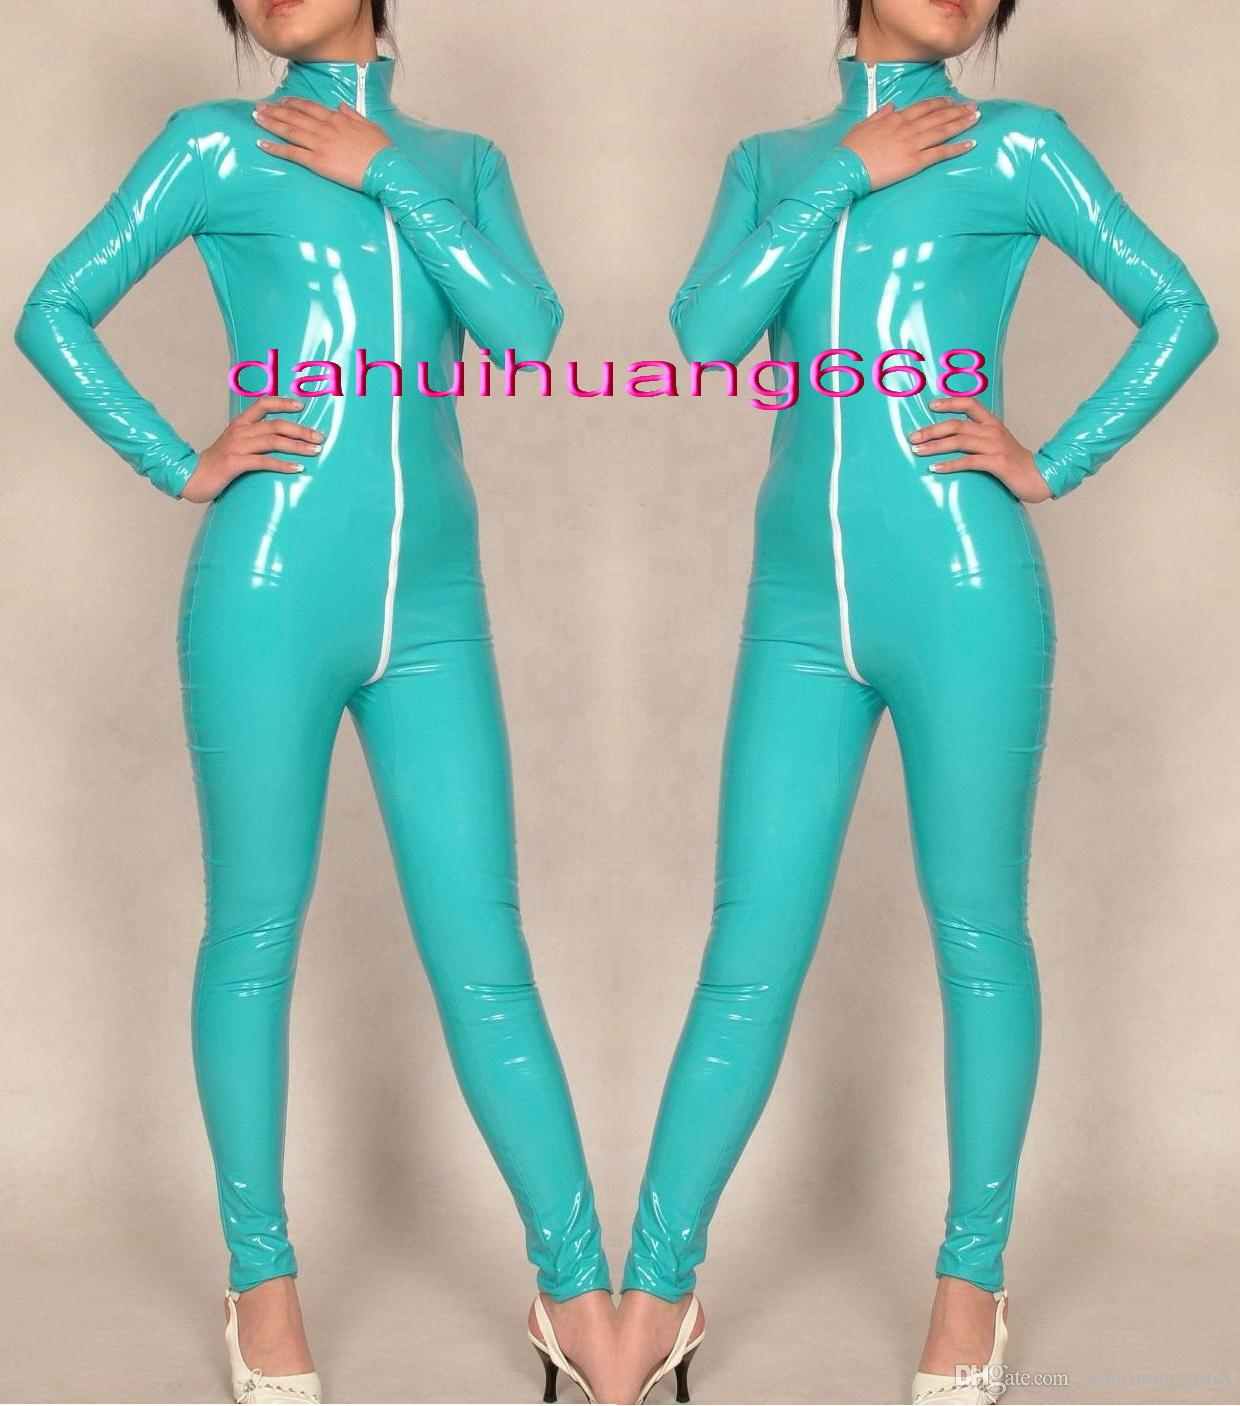 Lake Blue Shiny PVC Catsuit Costumes Unisex Shiny Lake Blue PVC Body Suit Unisex Sexy PVC Bodysuit leotard Costumes With Long Zip DH179